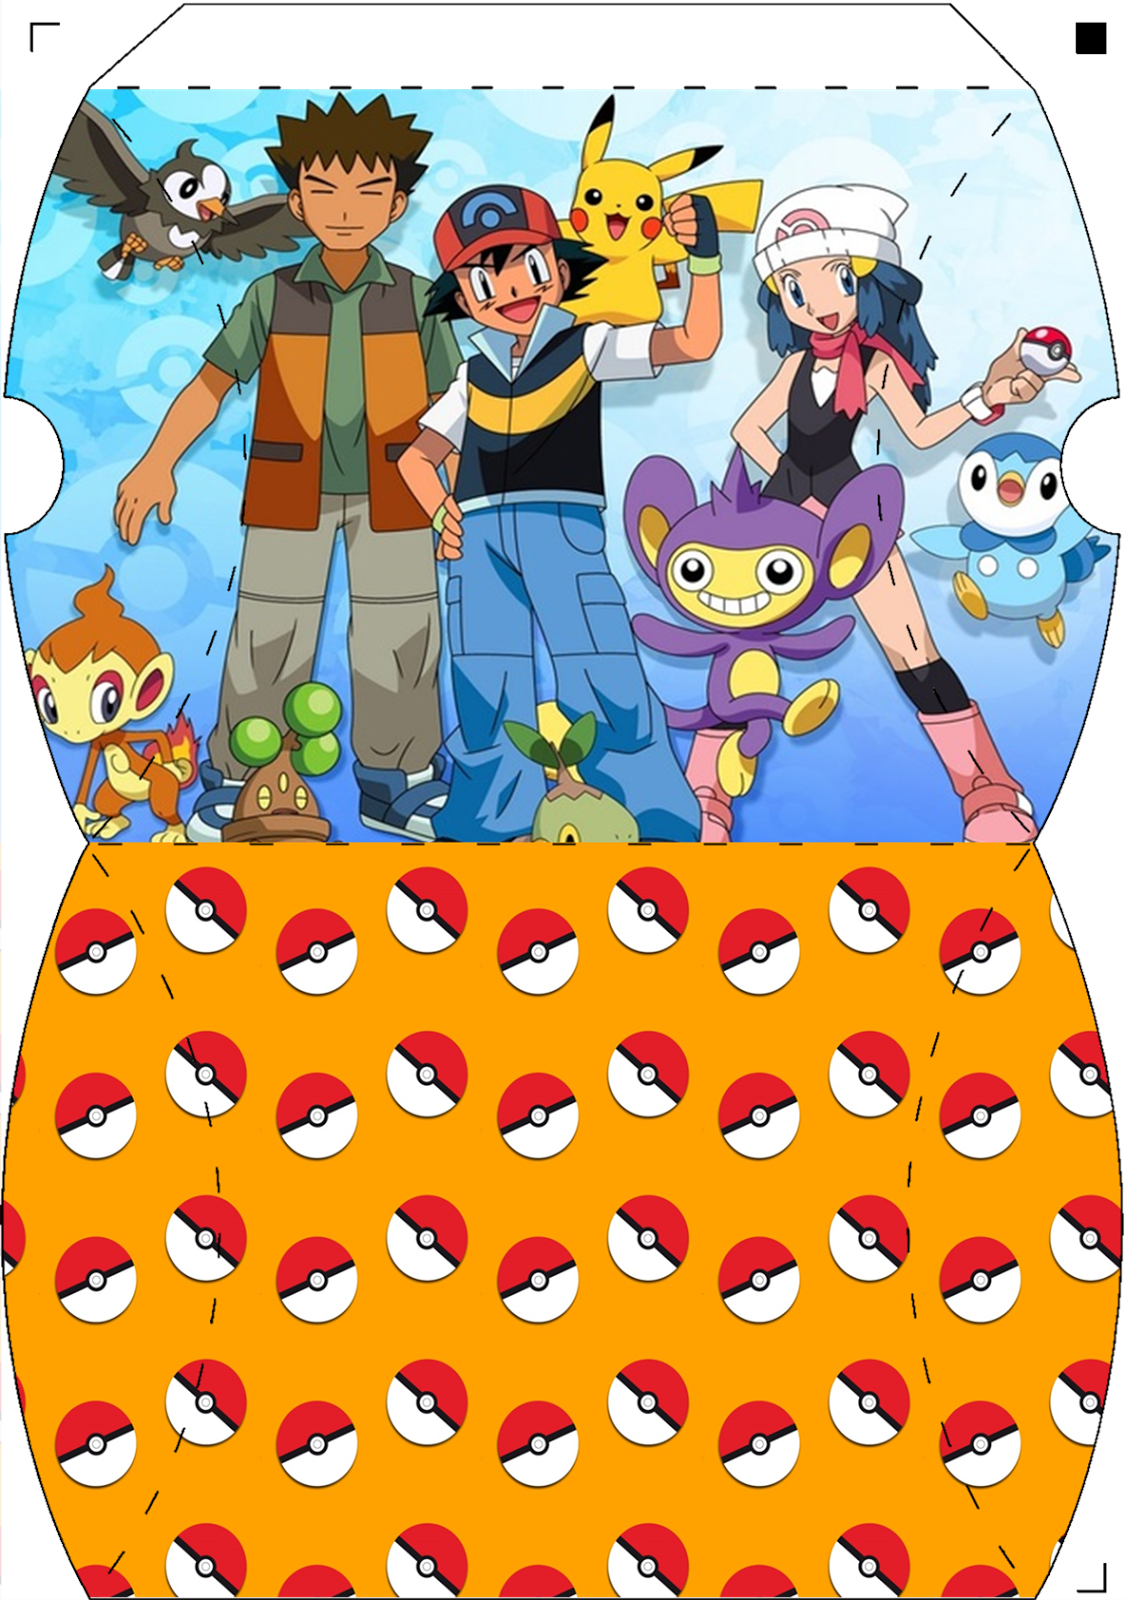 photograph regarding Free Printable Pokemon known as Pokemon Absolutely free Printable Pillow Containers. - Oh My Fiesta! for Geeks